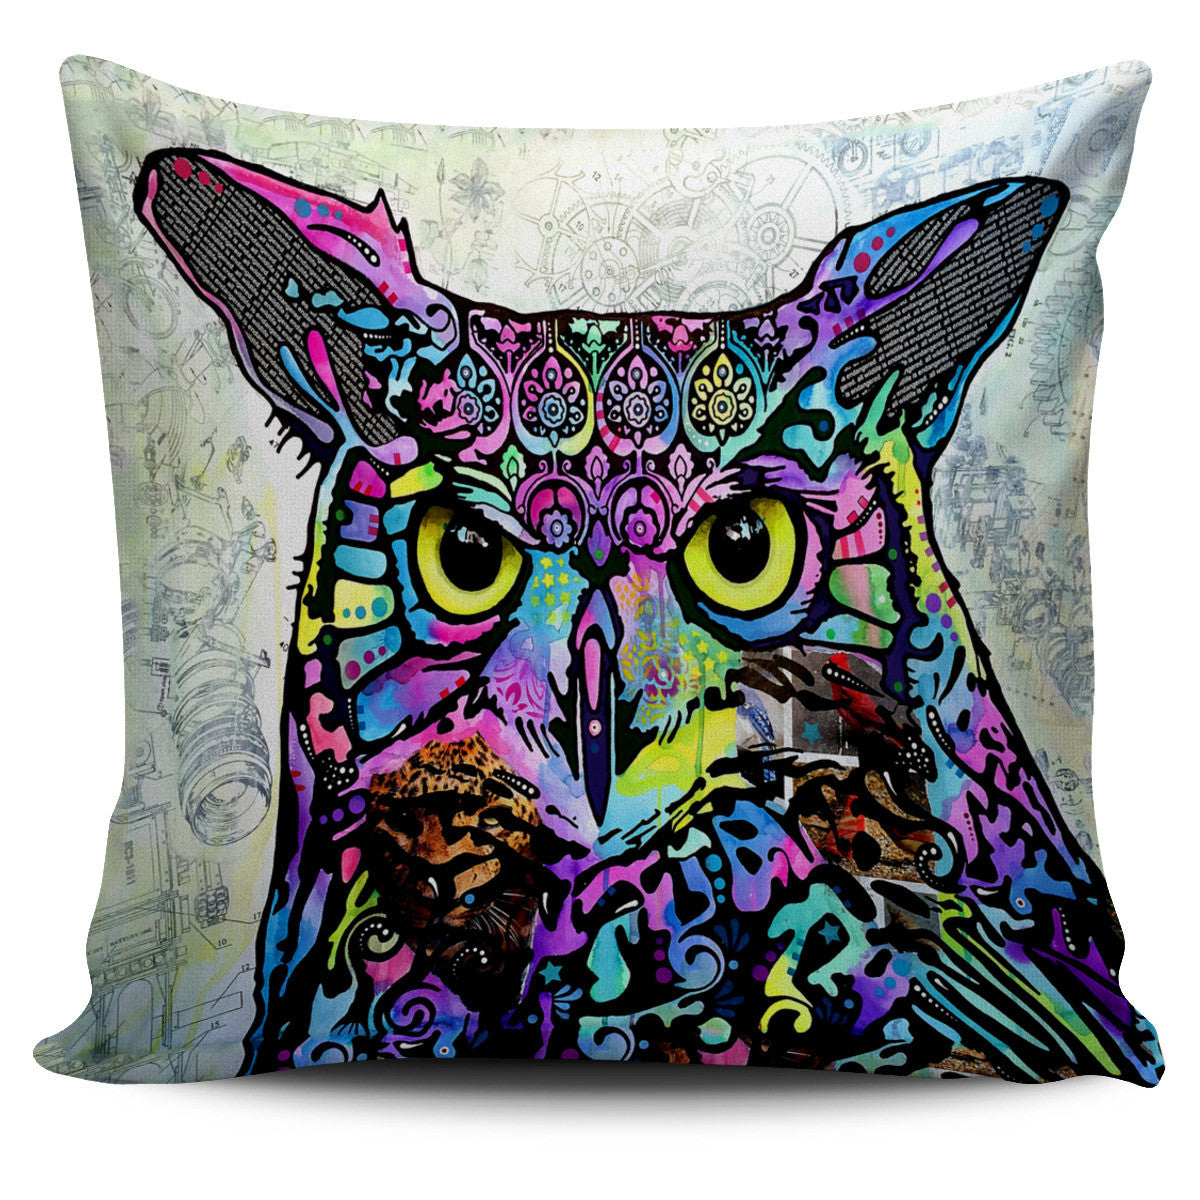 Owl Series Pillow Covers Offer